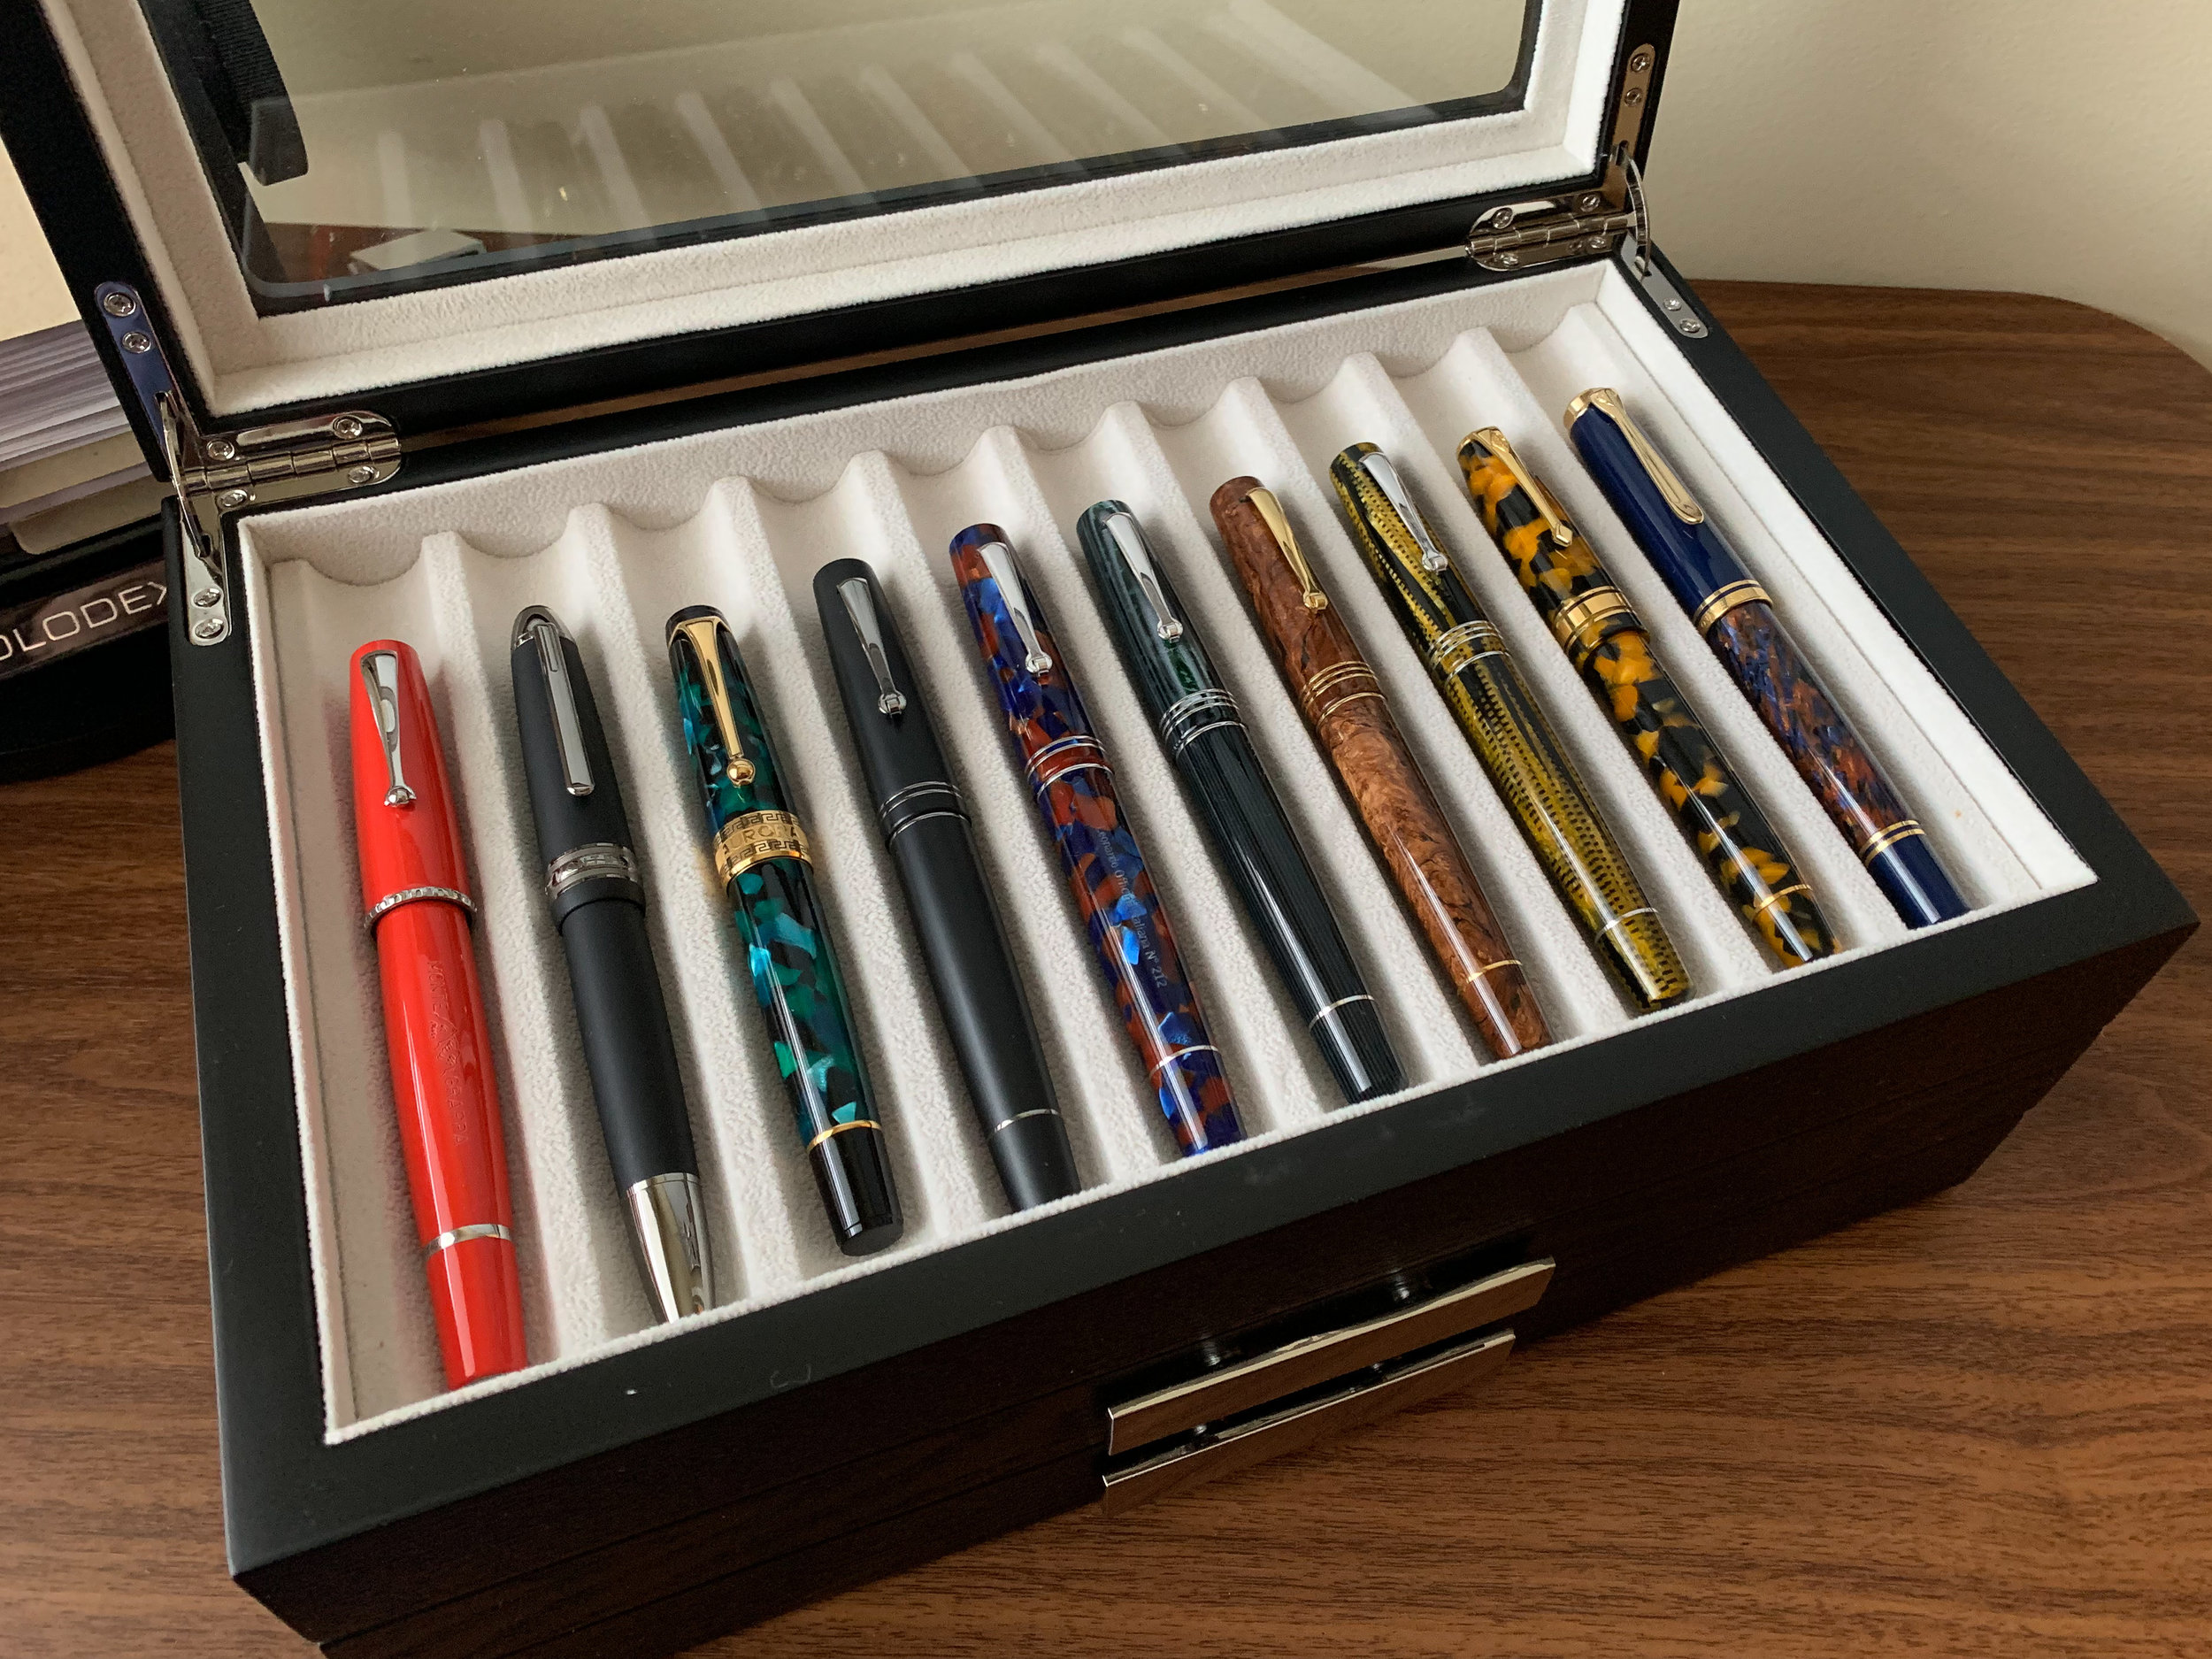 "A Leonardo Momento Zero ""Family Snapshot,"" with some other pens for comparison purposes. From left: Montegrappa Monte-Grappa, Montblanc 146, Aurora Optima, Momento Zeroes in Matte Black, Sea Stone Acrylic, Arco Verde celluloid, Burlwood celluloid, and Burkina celluloid, Conway Stewart Model 100, and a Pelikan M800 Stone Garden."